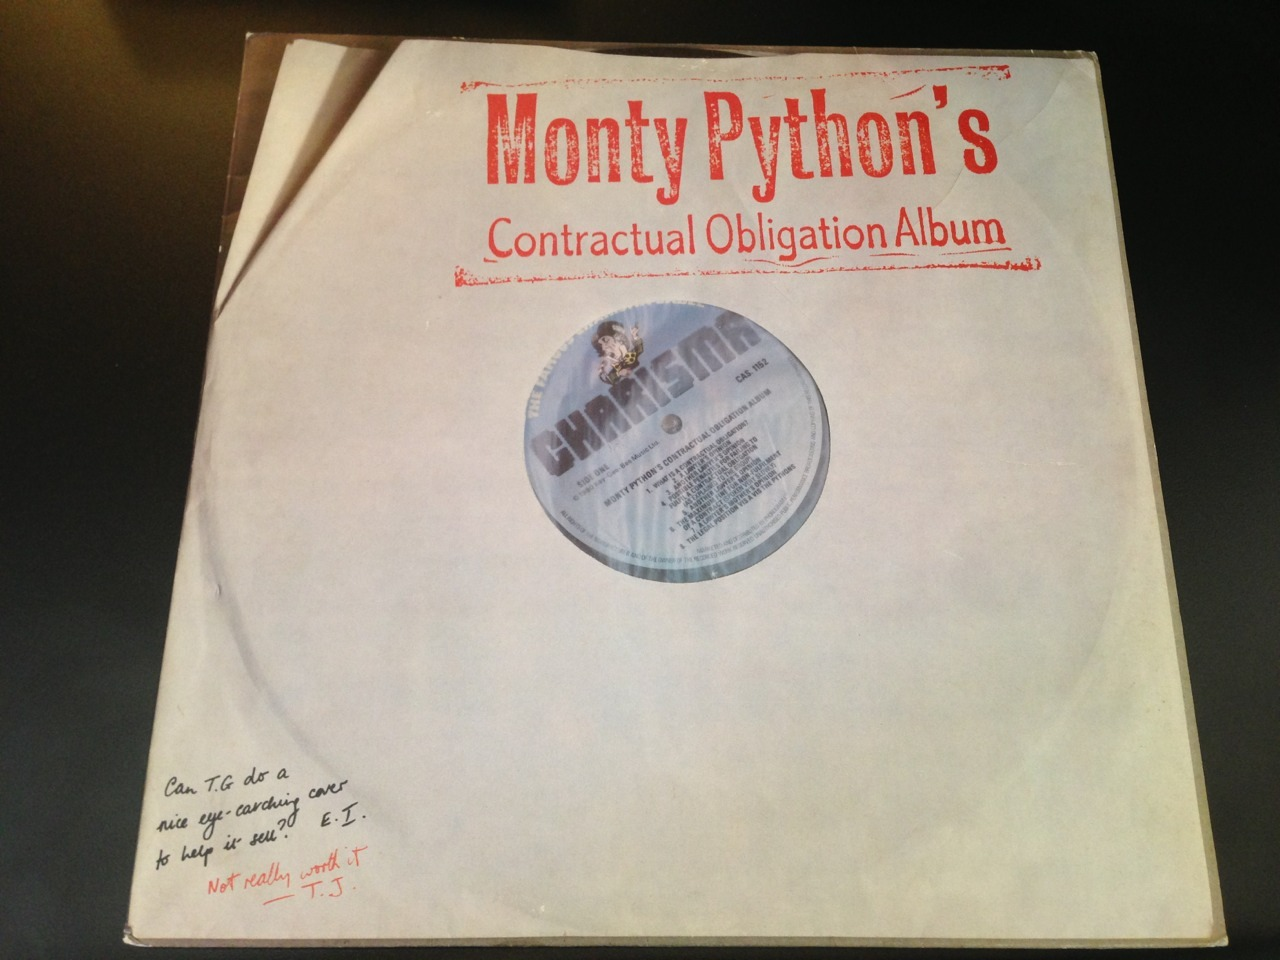 Vinyl art for the original pressing of Monty Python's Contractual Obligation album